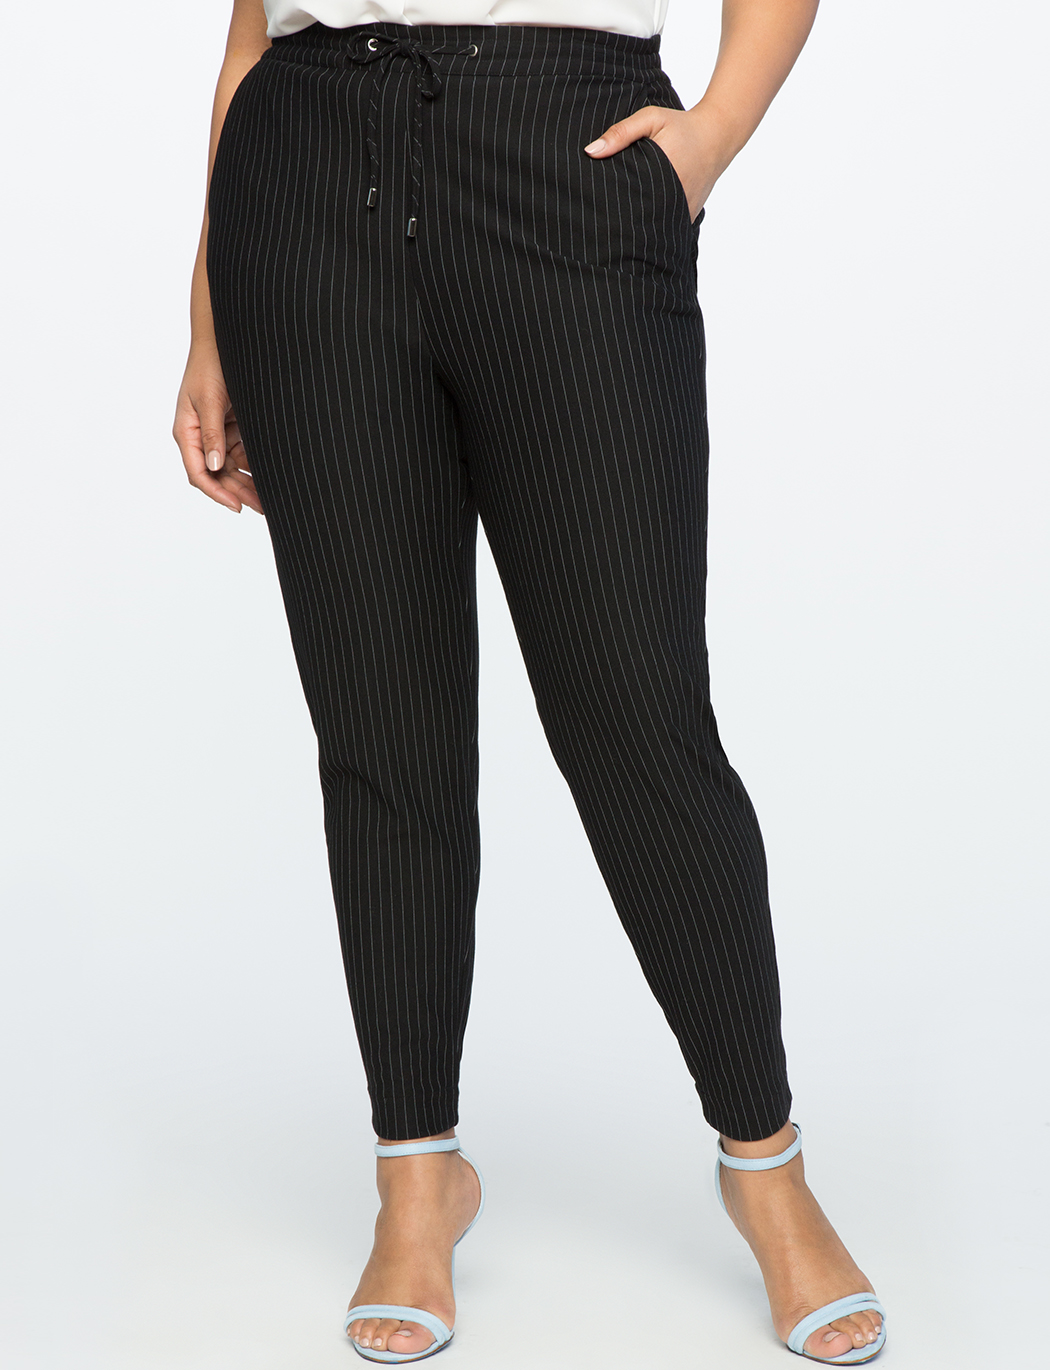 Pull On Pinstripe Trouser | Women\'s Plus Size Pants | ELOQUII